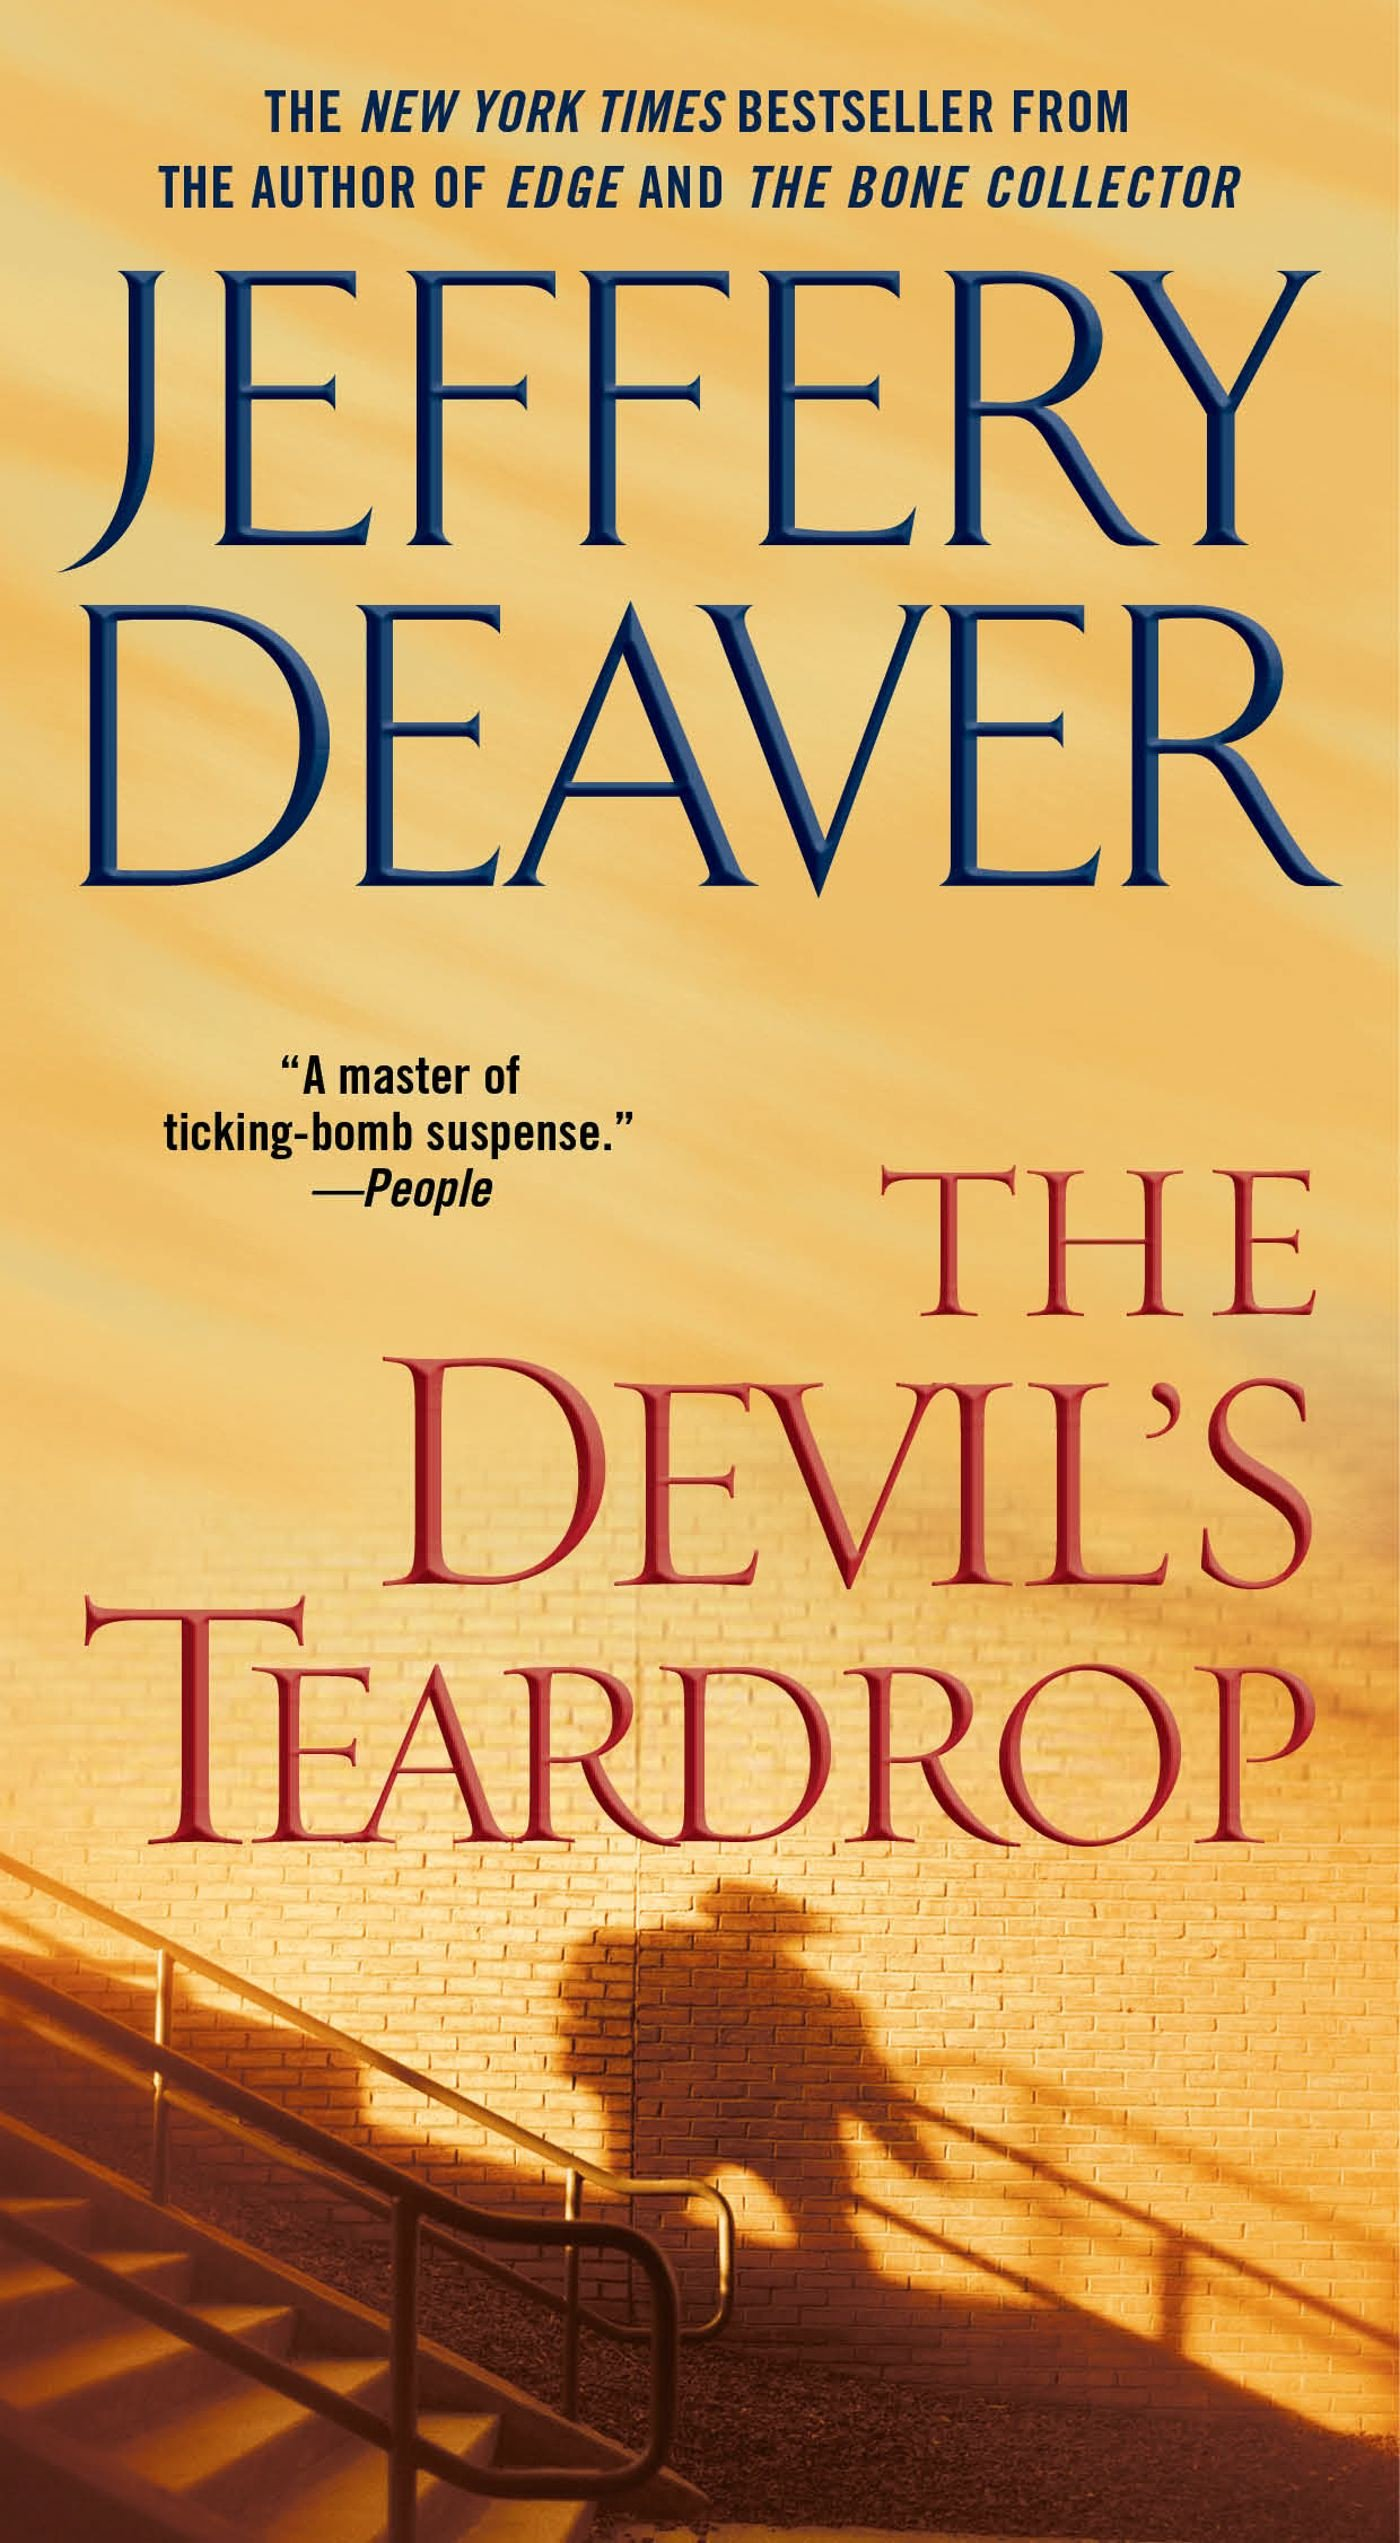 Book cover of The Devils Teardrop